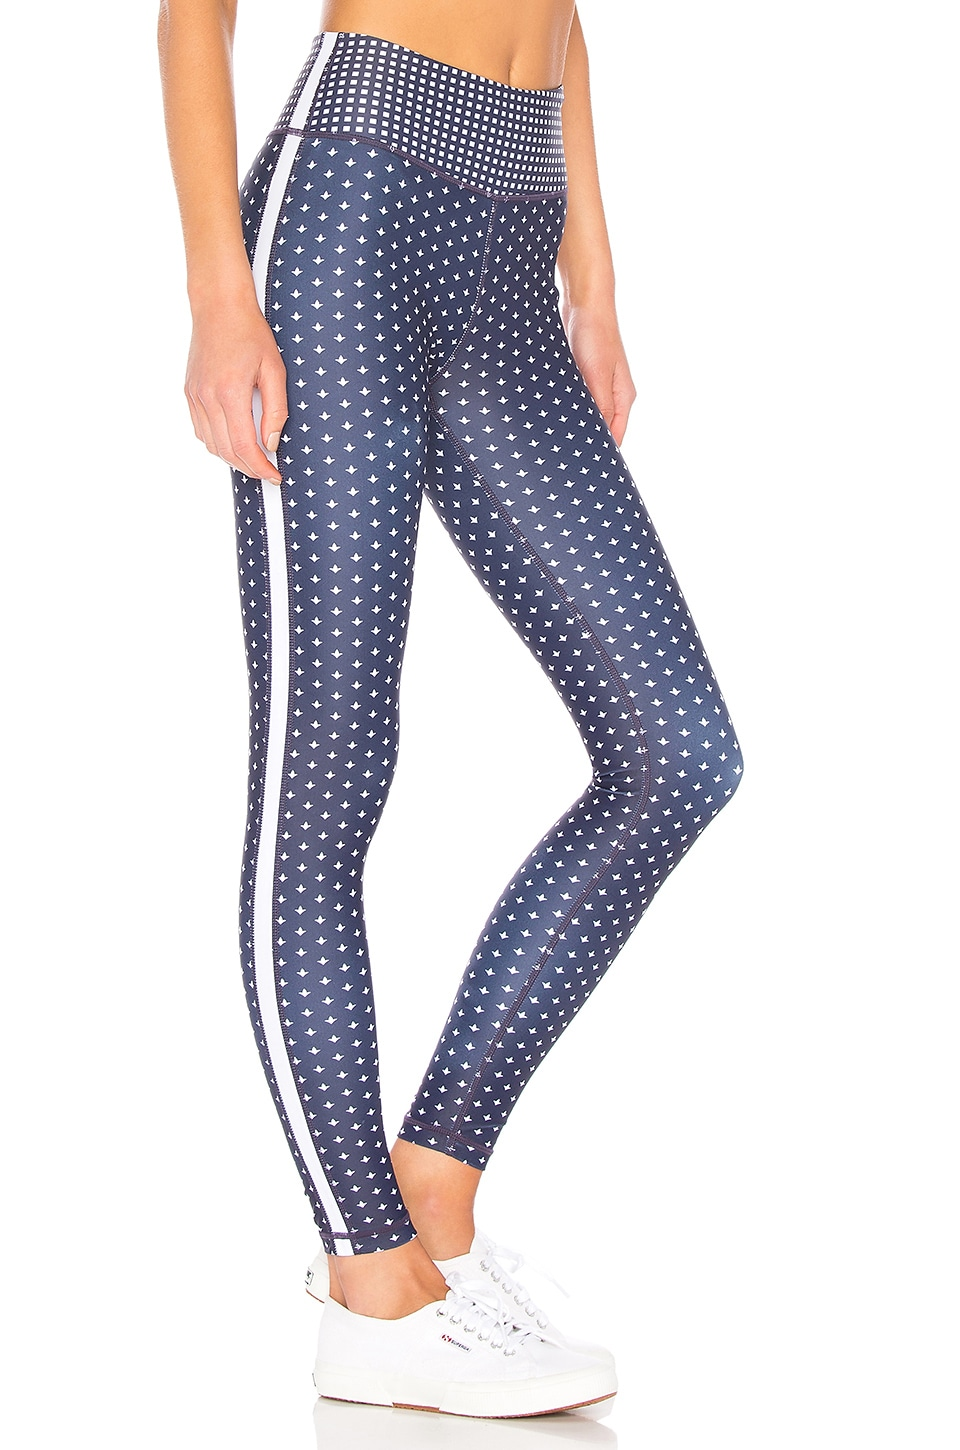 ALL FENIX Indie Full Length Pant in Navy